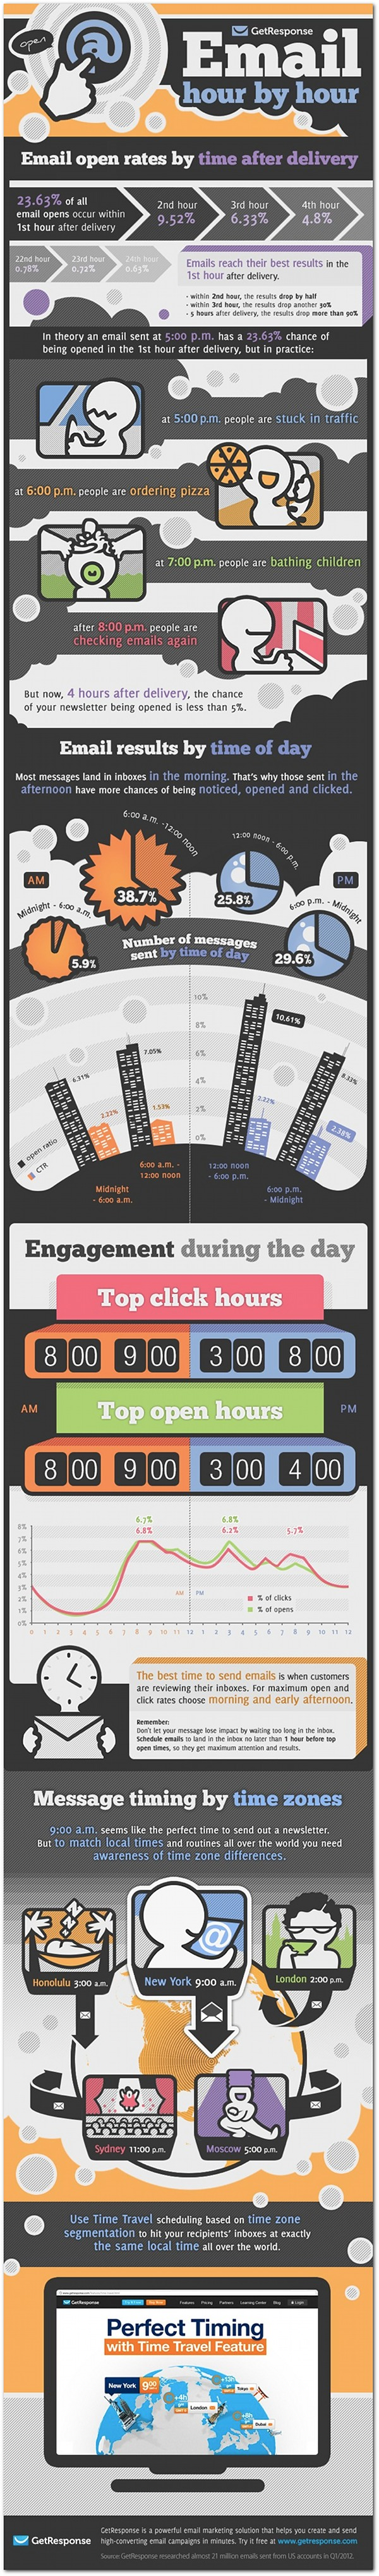 infographic when is the best time to send emails